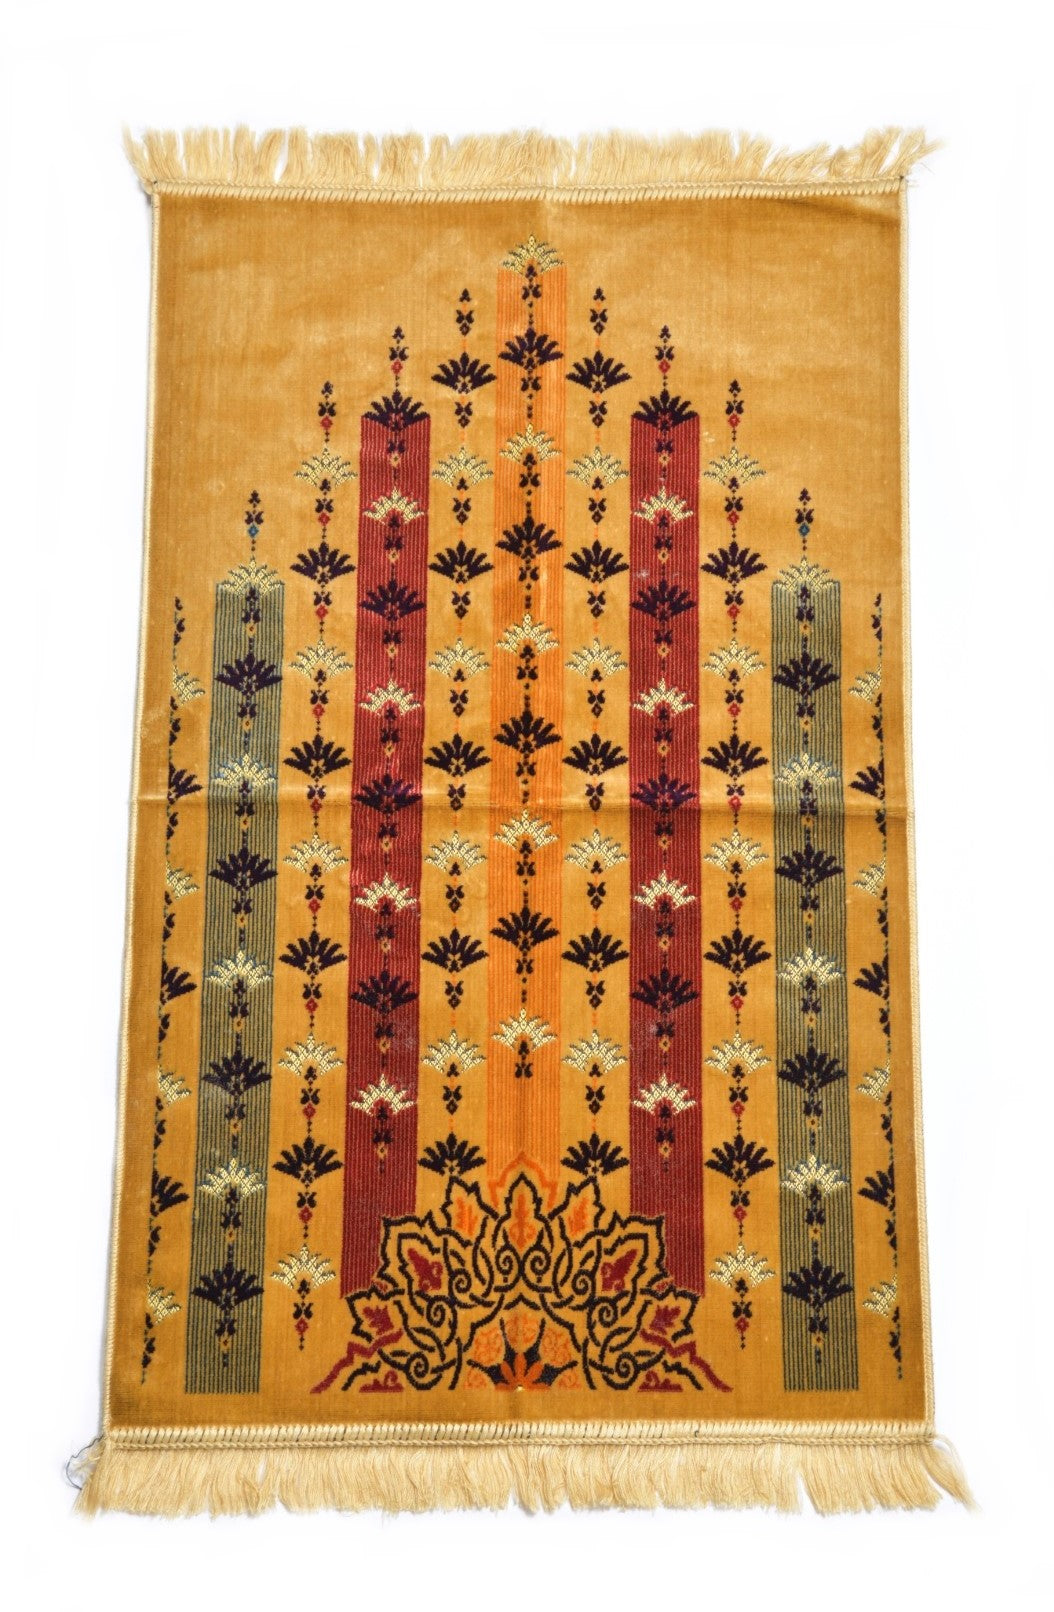 Al Arabia Muslim Prayer Rug - Made from Embossed Velvet - Features Turkish Ethnic Design & Fringes On Both Sides - Portable Islamic Prayer Mat - Perfect Gift for Ramadan & Special Occasions, 44 x 27